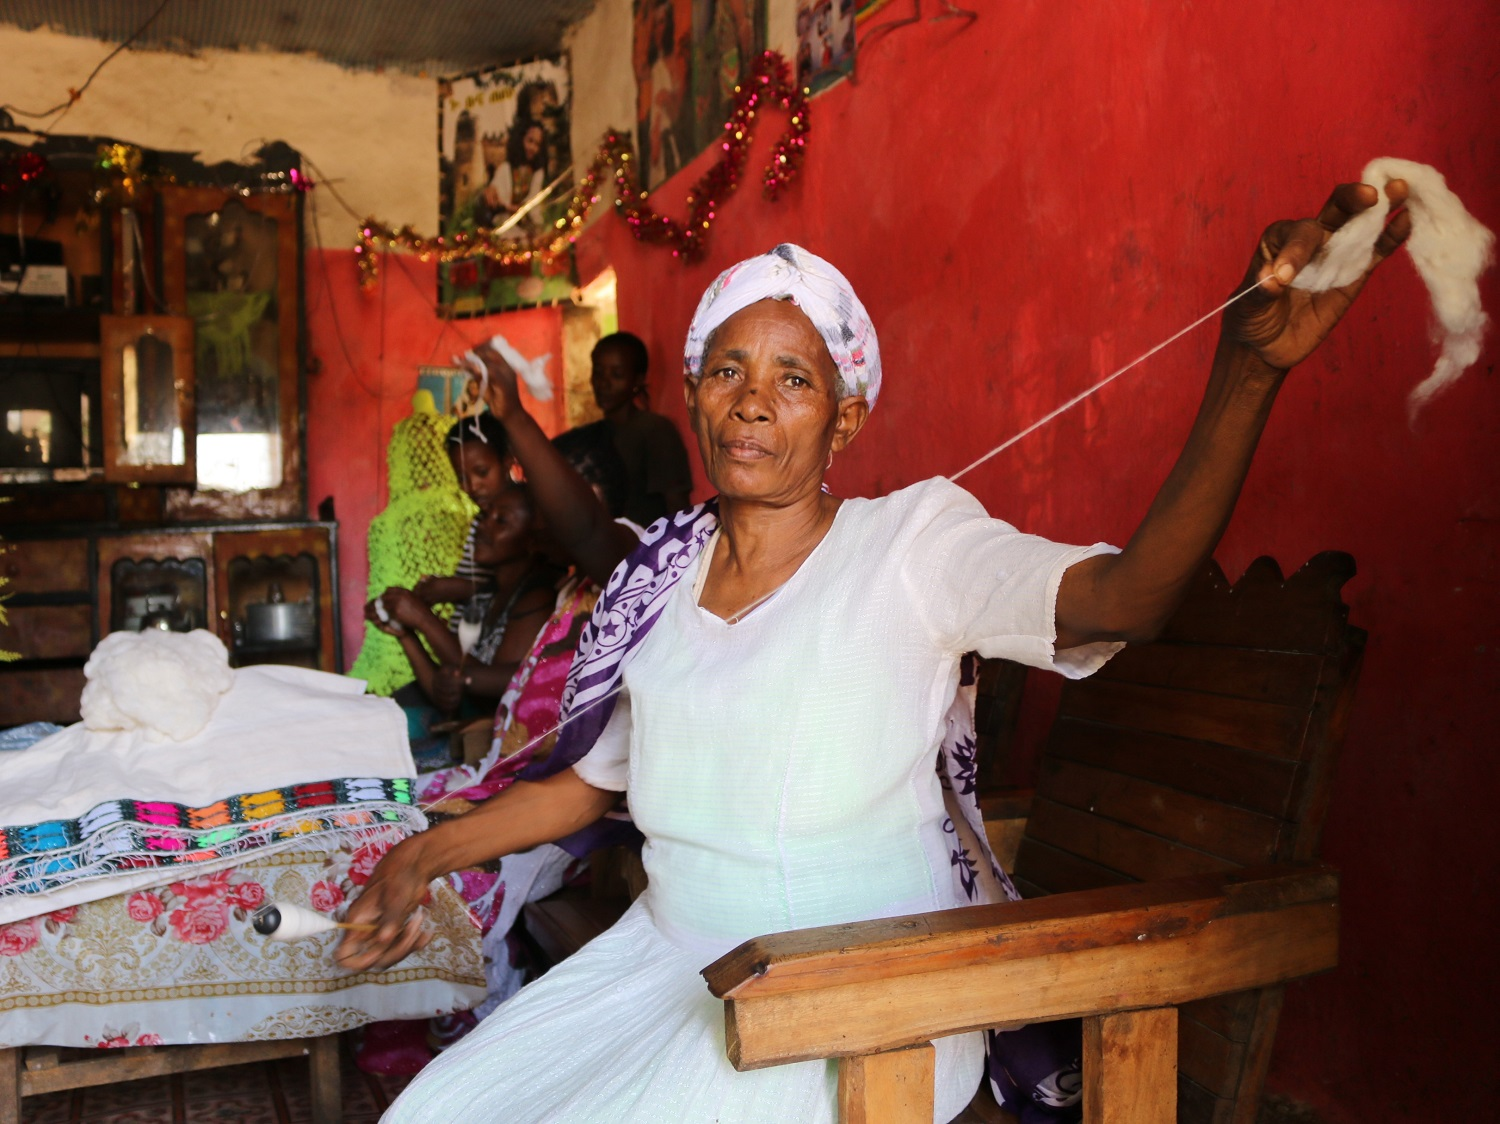 Wudinesh uses IPM techniques to grow her cotton sustainably